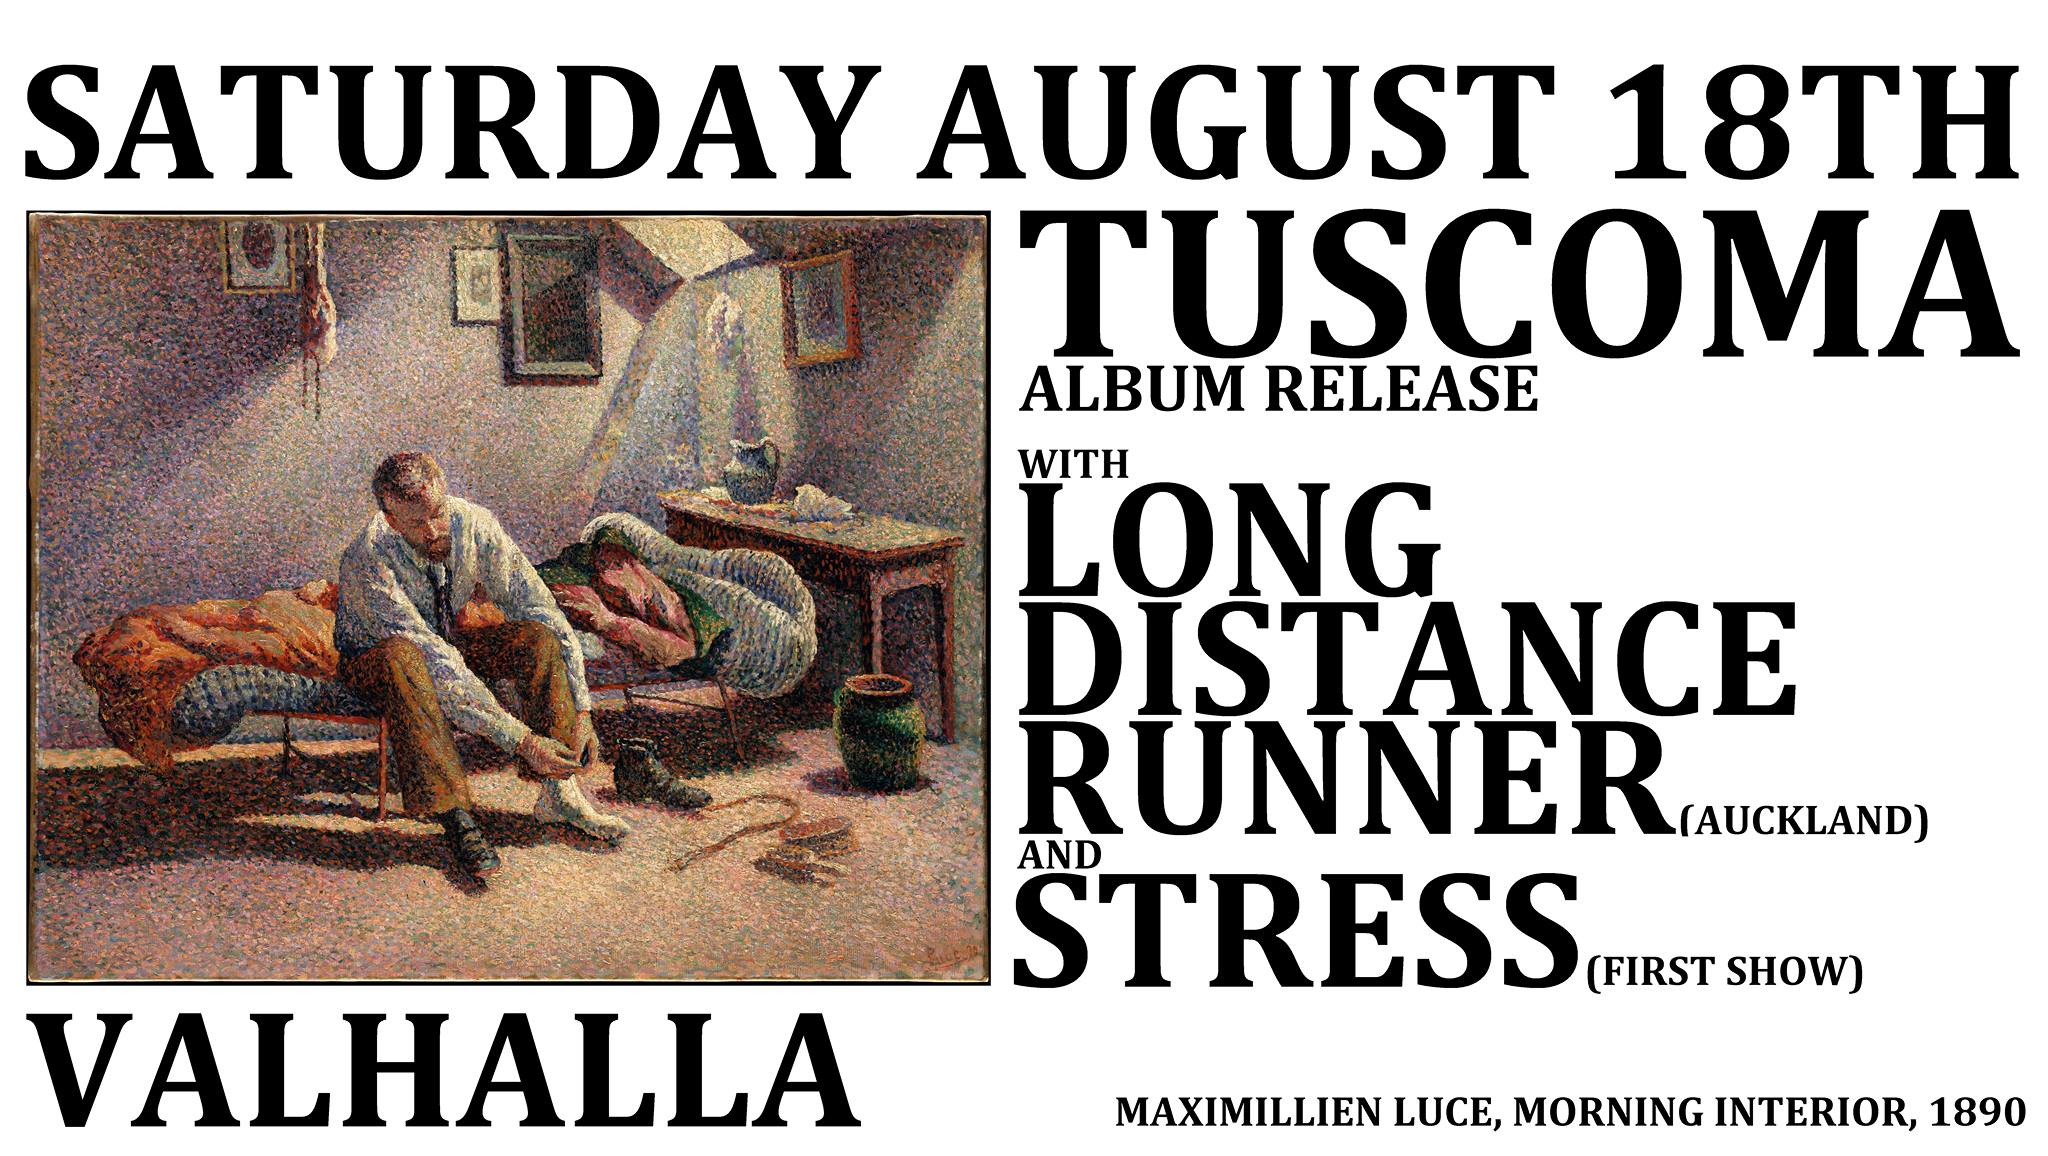 Tuscoma, Long Distance Runner, Stress